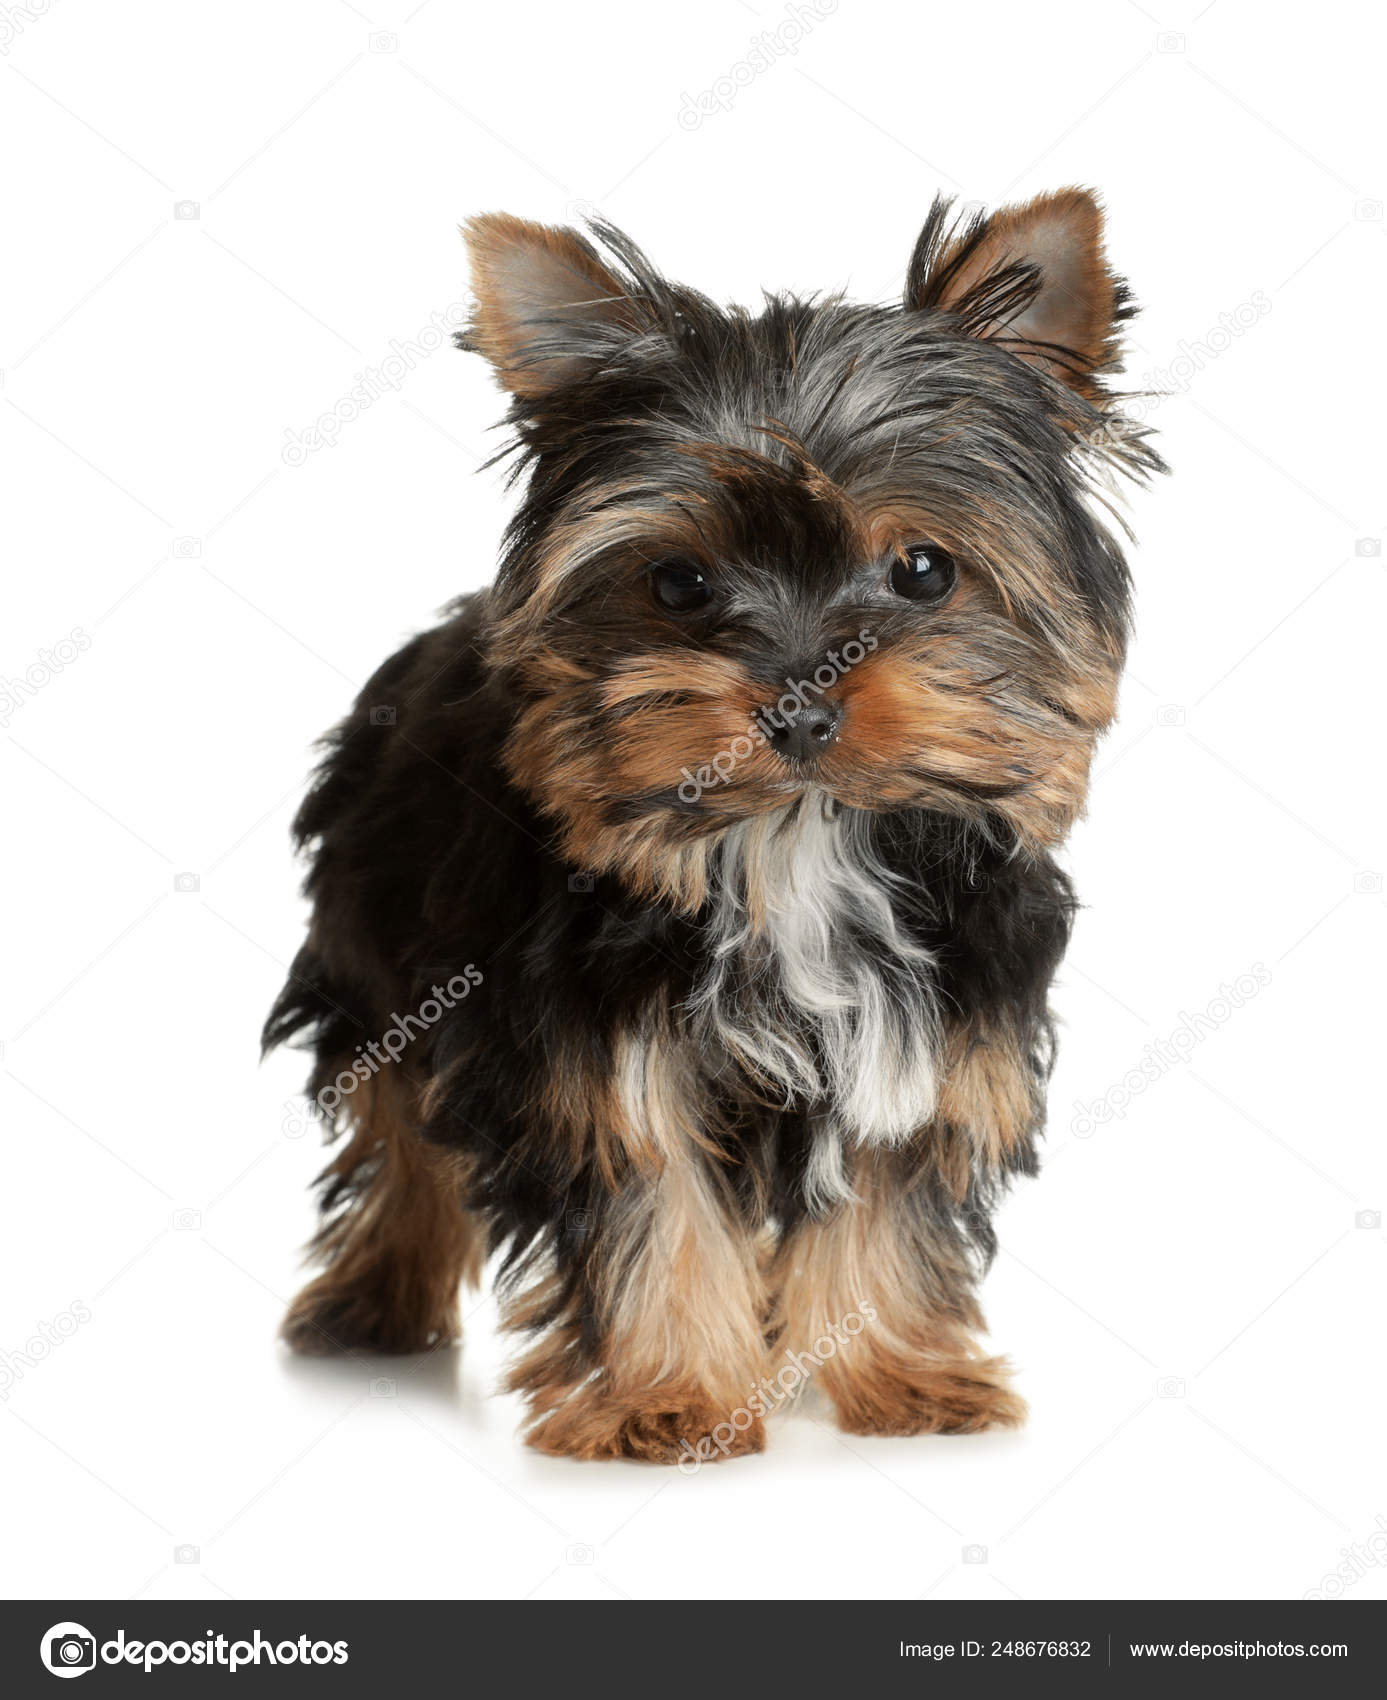 Cute Yorkshire Terrier Puppy On White Background Happy Dog Stock Photo C Liudmilachernetska Gmail Com 248676832